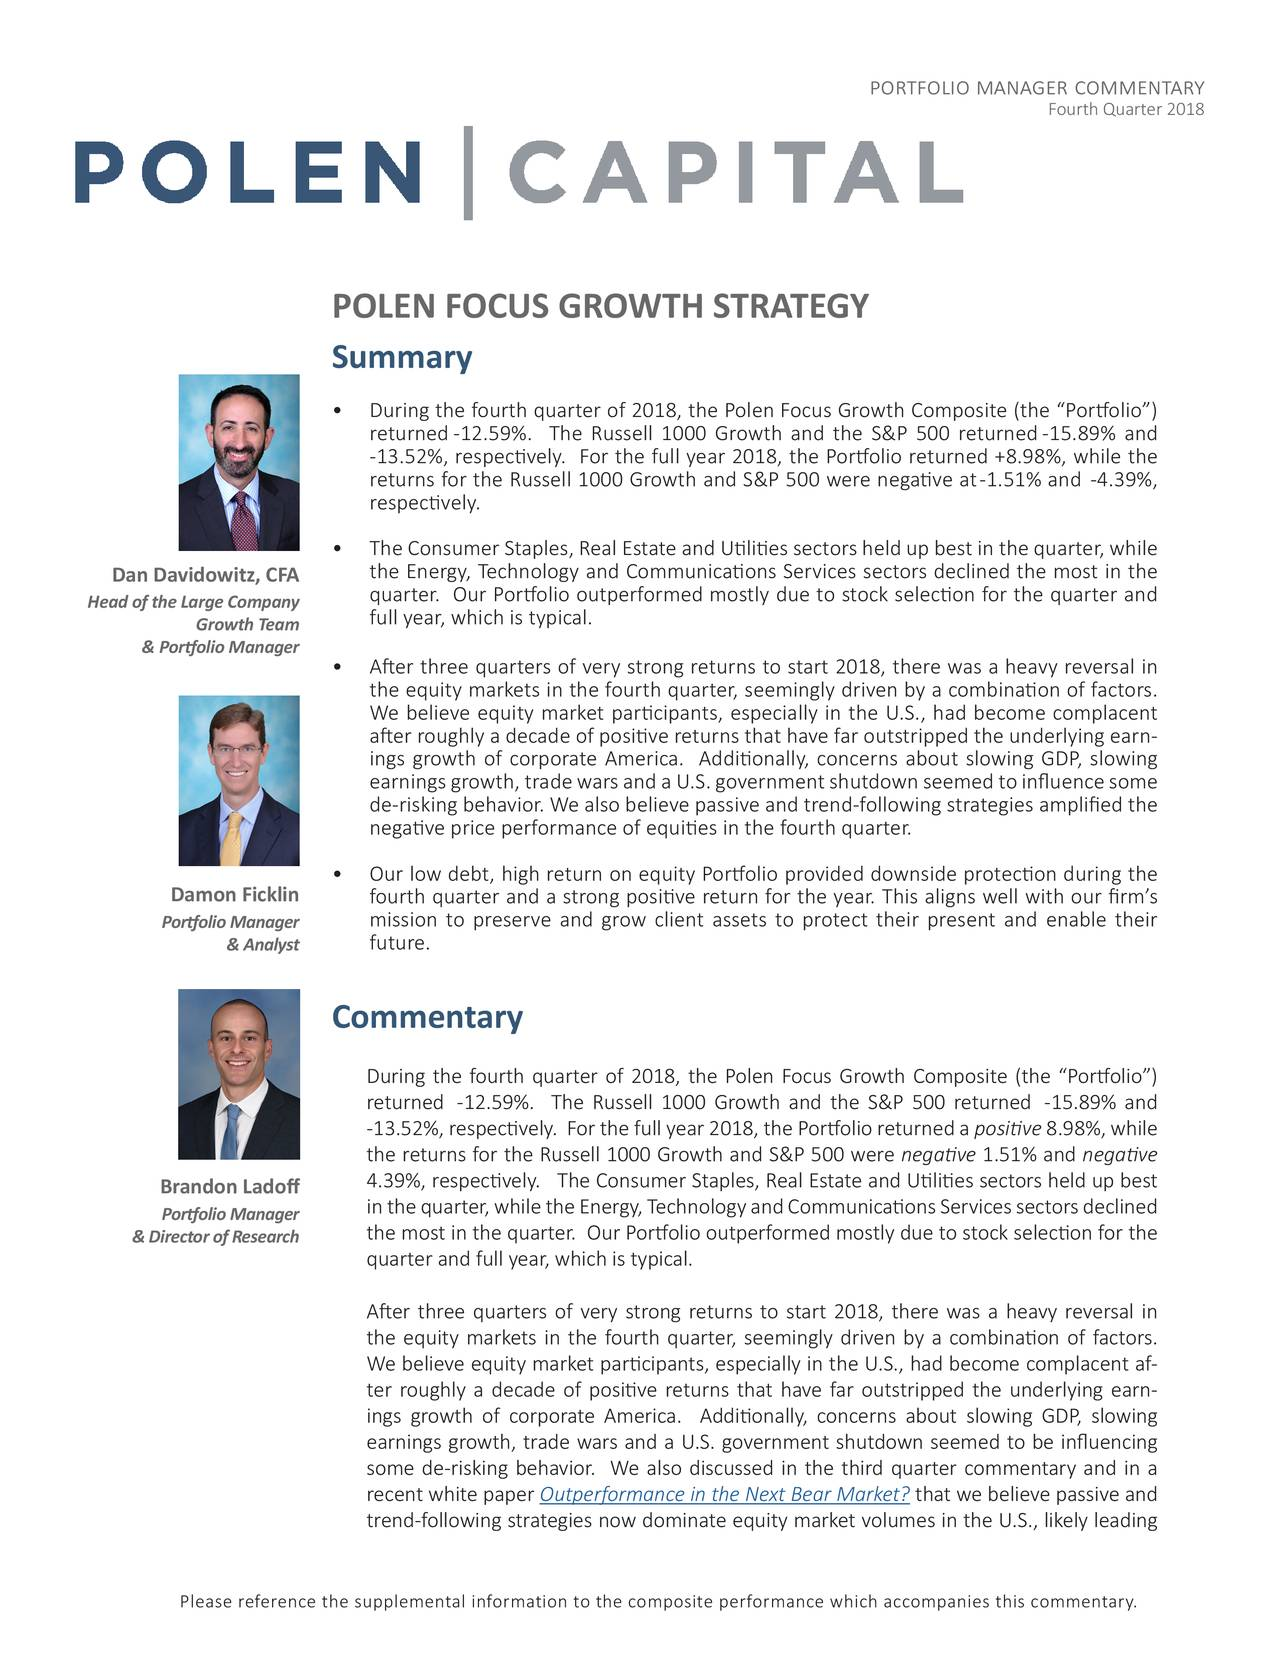 "Fourth Quarter 2018 POLEN FOCUS GROWTH STRATEGY Summary • During the fourth quarter of 2018, the Polen Focus Growth Composite (the ""Portfolio"") returned-12.59%. The Russell 1000 Growth and the S&P 500 returned-15.89% and -13.52%, respectively. For the full year 2018, the Portfolio returned +8.98%, while the returns for the Russell 1000 Growth and S&P 500 were negative at-1.51% and -4.39%, respectively. • The Consumer Staples, Real Estate and Utilities sectors held up best in the quarter, while Dan Davidowitz, CFA the Energy, Technology and Communications Services sectors declined the most in the Head of the Large Company quarter. Our Portfolio outperformed mostly due to stock selection for the quarter and Growth Team full year, which is typical. & Portfolio Manager • After three quarters of very strong returns to start 2018, there was a heavy reversal in the equity markets in the fourth quarter, seemingly driven by a combination of factors. We believe equity market participants, especially in the U.S., had become complacent after roughly a decade of positive returns that have far outstripped the underlying earn - ings growth of corporate America. Additionally, concerns about slowing GDP, slowing earningsgrowth,tradewarsandaU.S.governmentshutdownseemedtoinfluencesome de-risking behavior. We also believe passive and trend-following strategies amplified the negative price performance of equities in the fourth quarter. • Our low debt, high return on equity Portfolio provided downside protection during the Damon Ficklin fourth quarter and a strong positive return for the year. This aligns well with our firm's Portfolio Manager mission to preserve and grow client assets to protect their present and enable their & Analyst future. Commentary During the fourth quarter of 2018, the Polen Focus Growth Composite (the ""Portfolio"") returned -12.59%. The Russell 1000 Growth and the S&P 500 returned -15.89% and -13.52%, respectively. For the full year 2018, the Portfolio returned a positive 8.98%, while the returns for the Russell 1000 Growth and S&P 500 were negative 1.51% and negative Brandon Ladoff 4.39%, respectively. The Consumer Staples, Real Estate and Utilities sectors held up best inthequarter,whiletheEnergy,TechnologyandCommunicationsServicessectorsdeclined Portfolio Manager & Director of Research the most in the quarter. Our Portfolio outperformed mostly due to stock selection for the quarter and full year, which is typical. After three quarters of very strong returns to start 2018, there was a heavy reversal in the equity markets in the fourth quarter, seemingly driven by a combination of factors. We believe equity market participants, especially in the U.S., had become complacent af- ter roughly a decade of positive returns that have far outstripped the underlying earn- ings growth of corporate America. Additionally, concerns about slowing GDP, slowing earnings growth, trade wars and a U.S. government shutdown seemed to be influencing some de-risking behavior. We also discussed in the third quarter commentary and in a recent white paper Outperformance in the Next Bear Market? that we believe passive and trend-following strategies now dominate equity market volumes in the U.S., likely leading Please reference the supplemental information to the composite performance which accompanies this commentary."